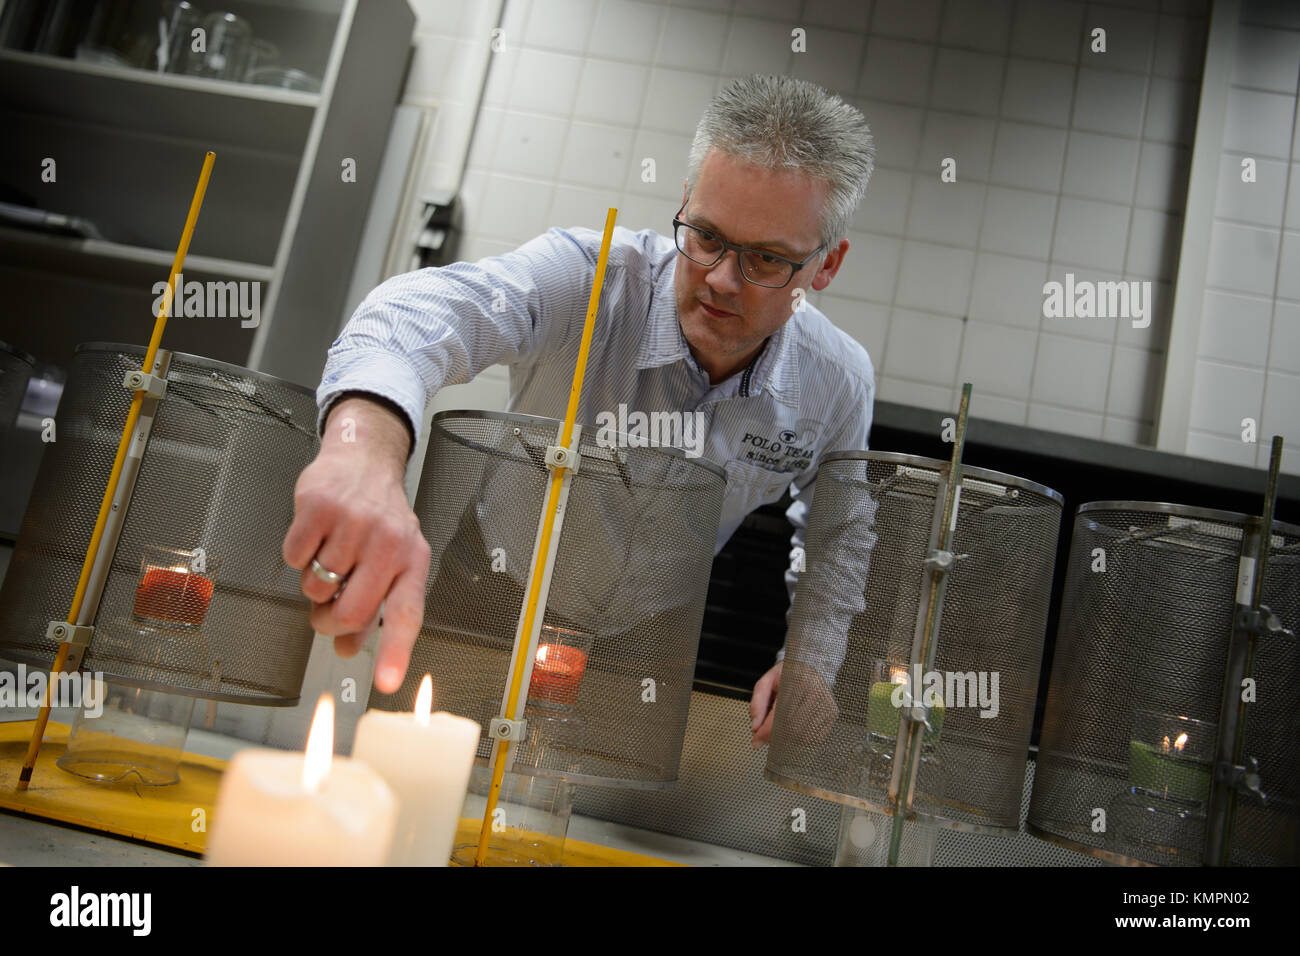 Stuttgart, Germany. 5th Dec, 2017. Candle tester Volker Albrecht points to a candle's flame, in Stuttgart, Germany, Stock Photo